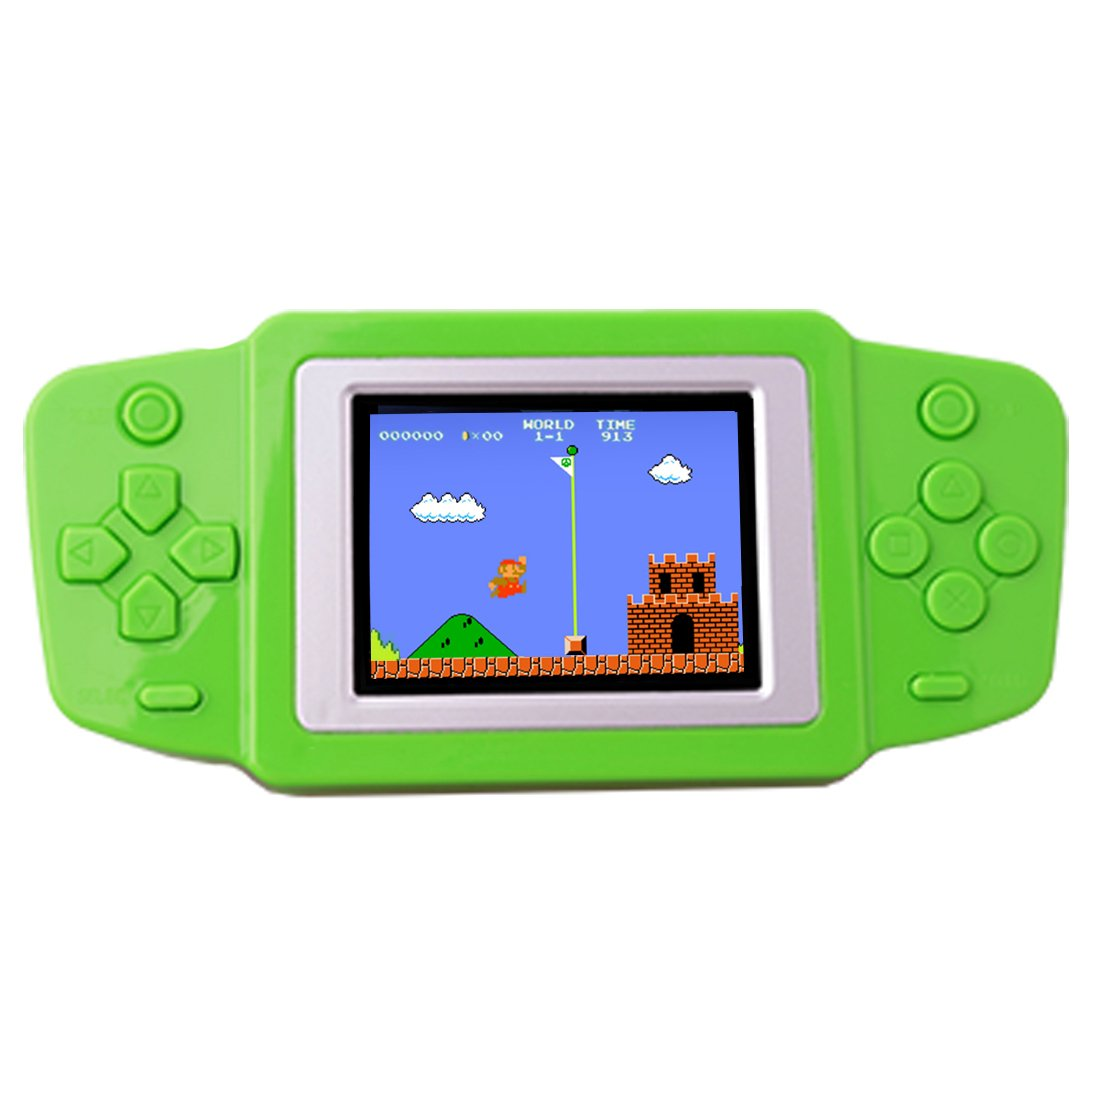 ZHISHAN Kids Retro Handheld Game Console Portable Game Player Built in 269 Classic Old Style Video Games with 2.5'' LCD Screen Boy Arcade Gaming System Unique Gift for Children (Green)